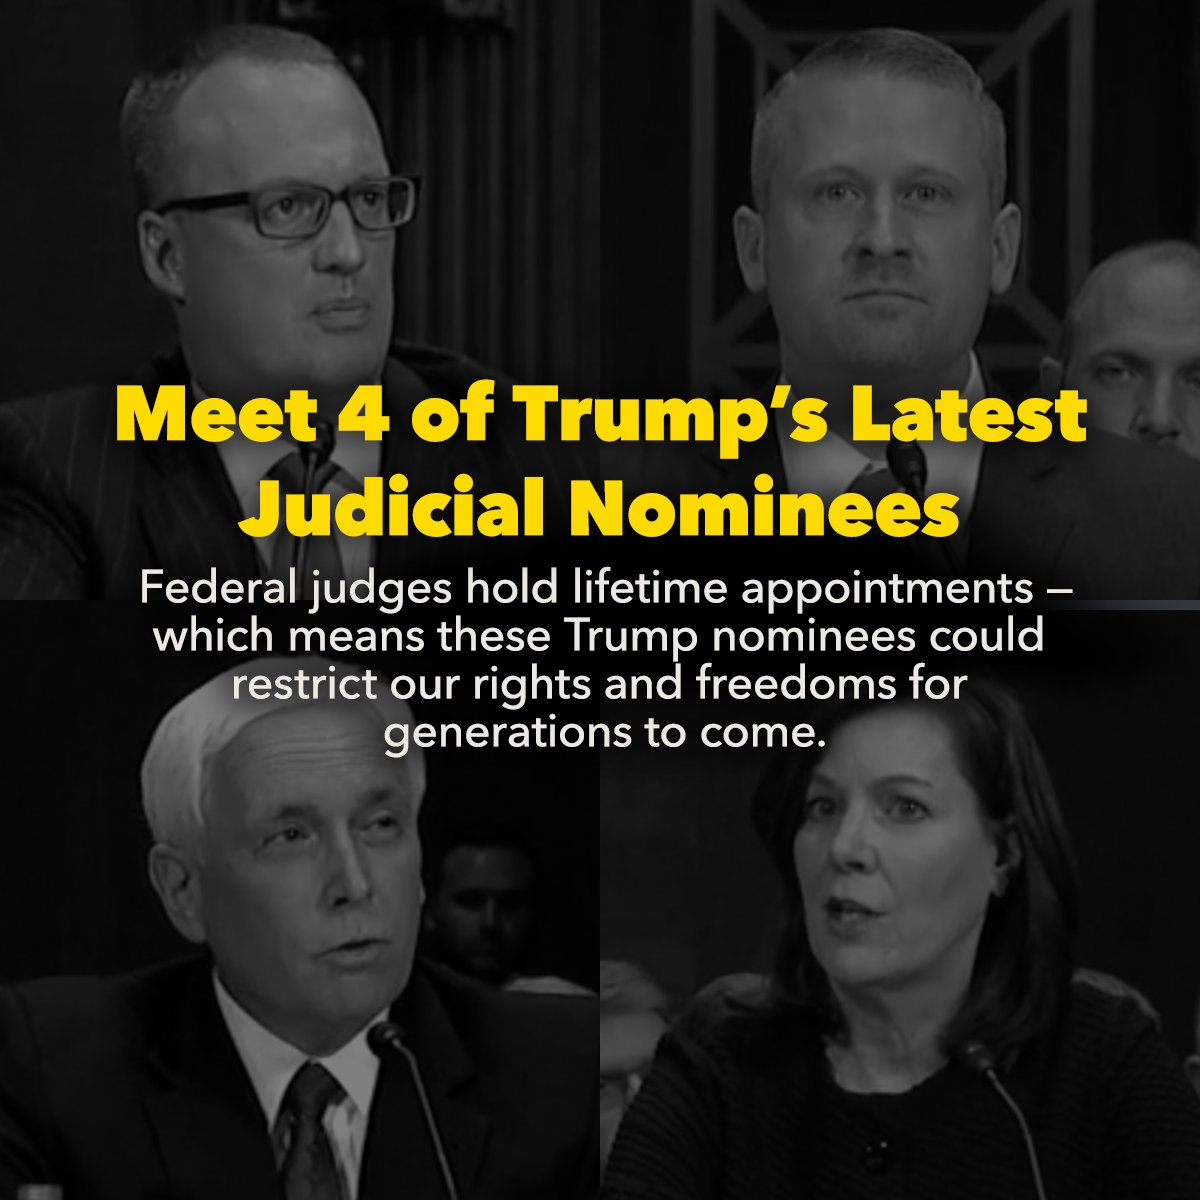 Trump is packing the judiciary with extreme and unqualified judges and courting disaster in the process. Jonathan Kobes could be confirmed next.   What you need to know: https://t.co/jjMmwXw43n #ProtectOurCourts #StopKobes